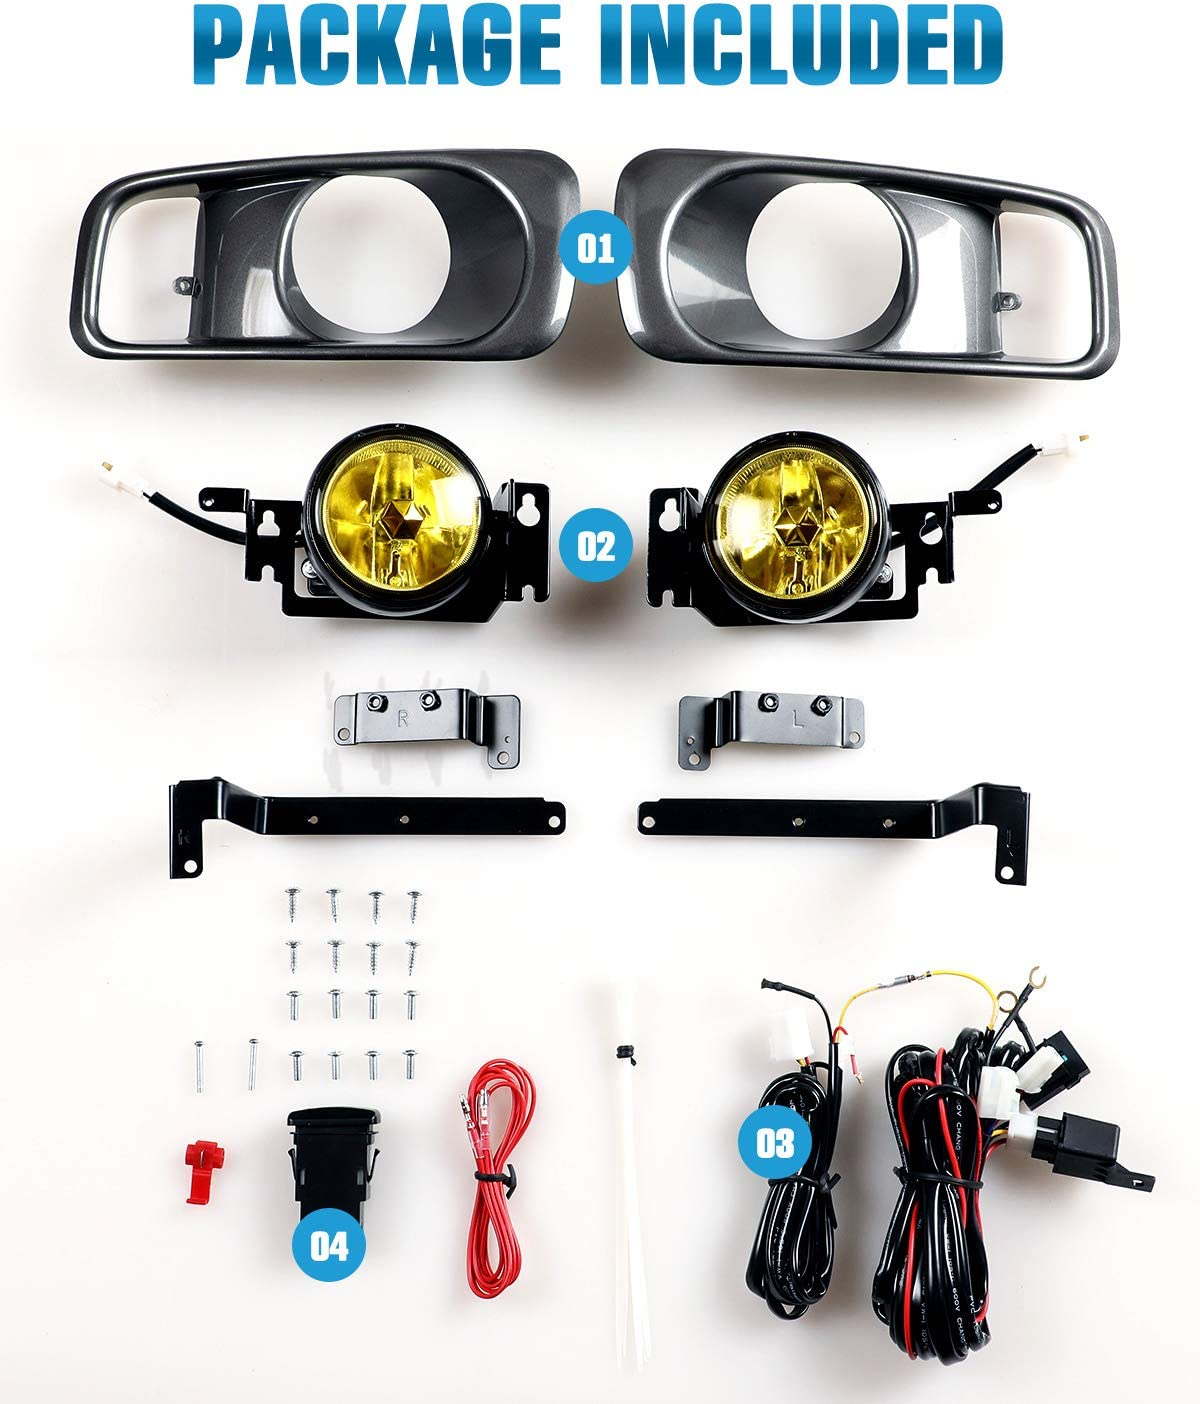 AUTOFREE Fog Lights for Honda Civic Si//TYPE R 1999 2000 with H3 12V 55W Blubs OEM Fog Lamps Assembly Included Wiring Kits /& Switch-1 Pair Yellow Lens